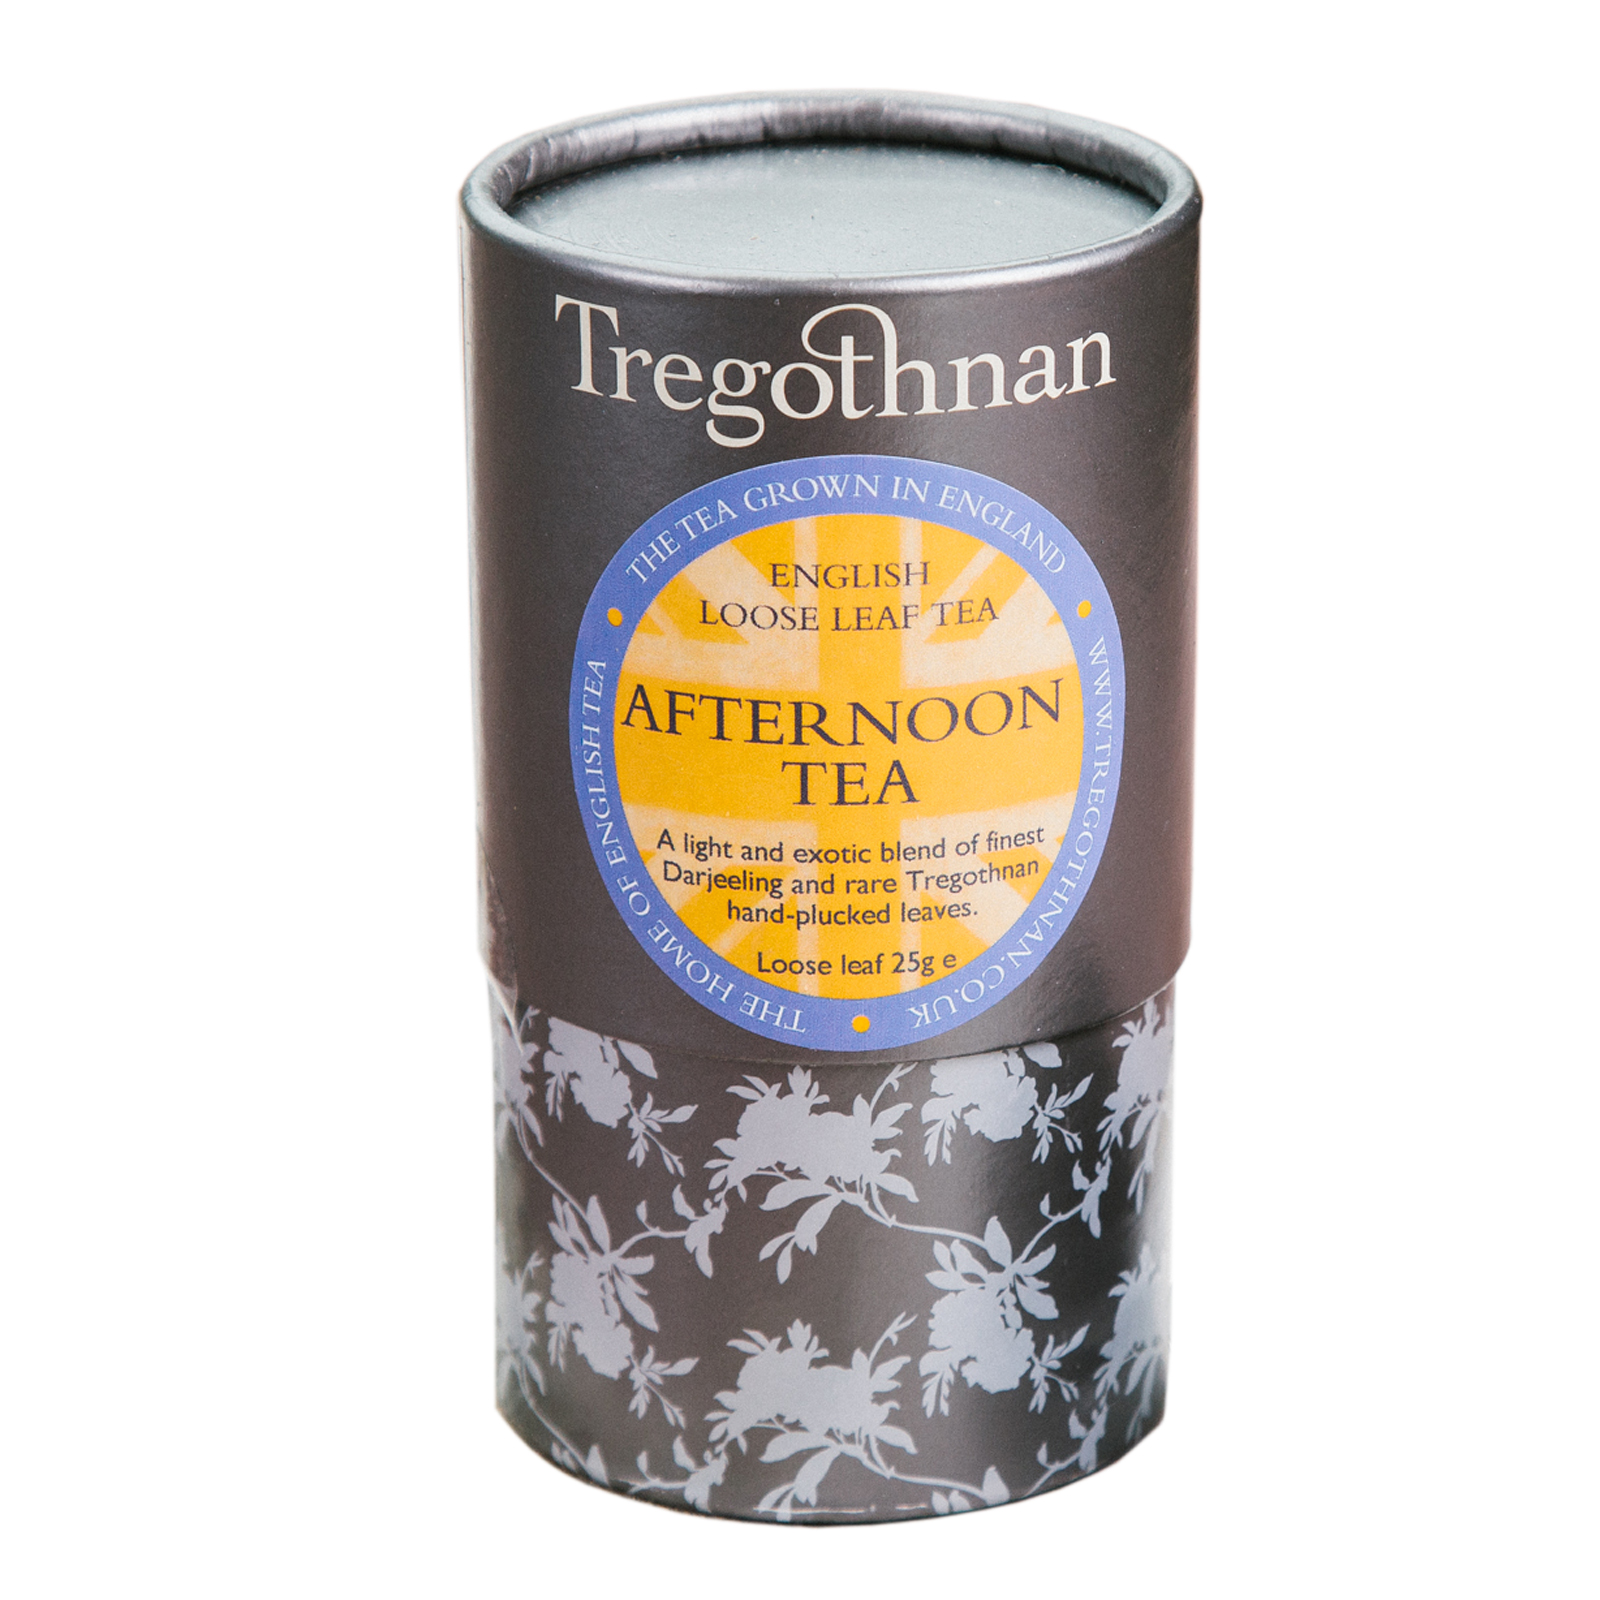 Tregothnan Afternoon Tea Loose Leaf Tea Caddy 25G